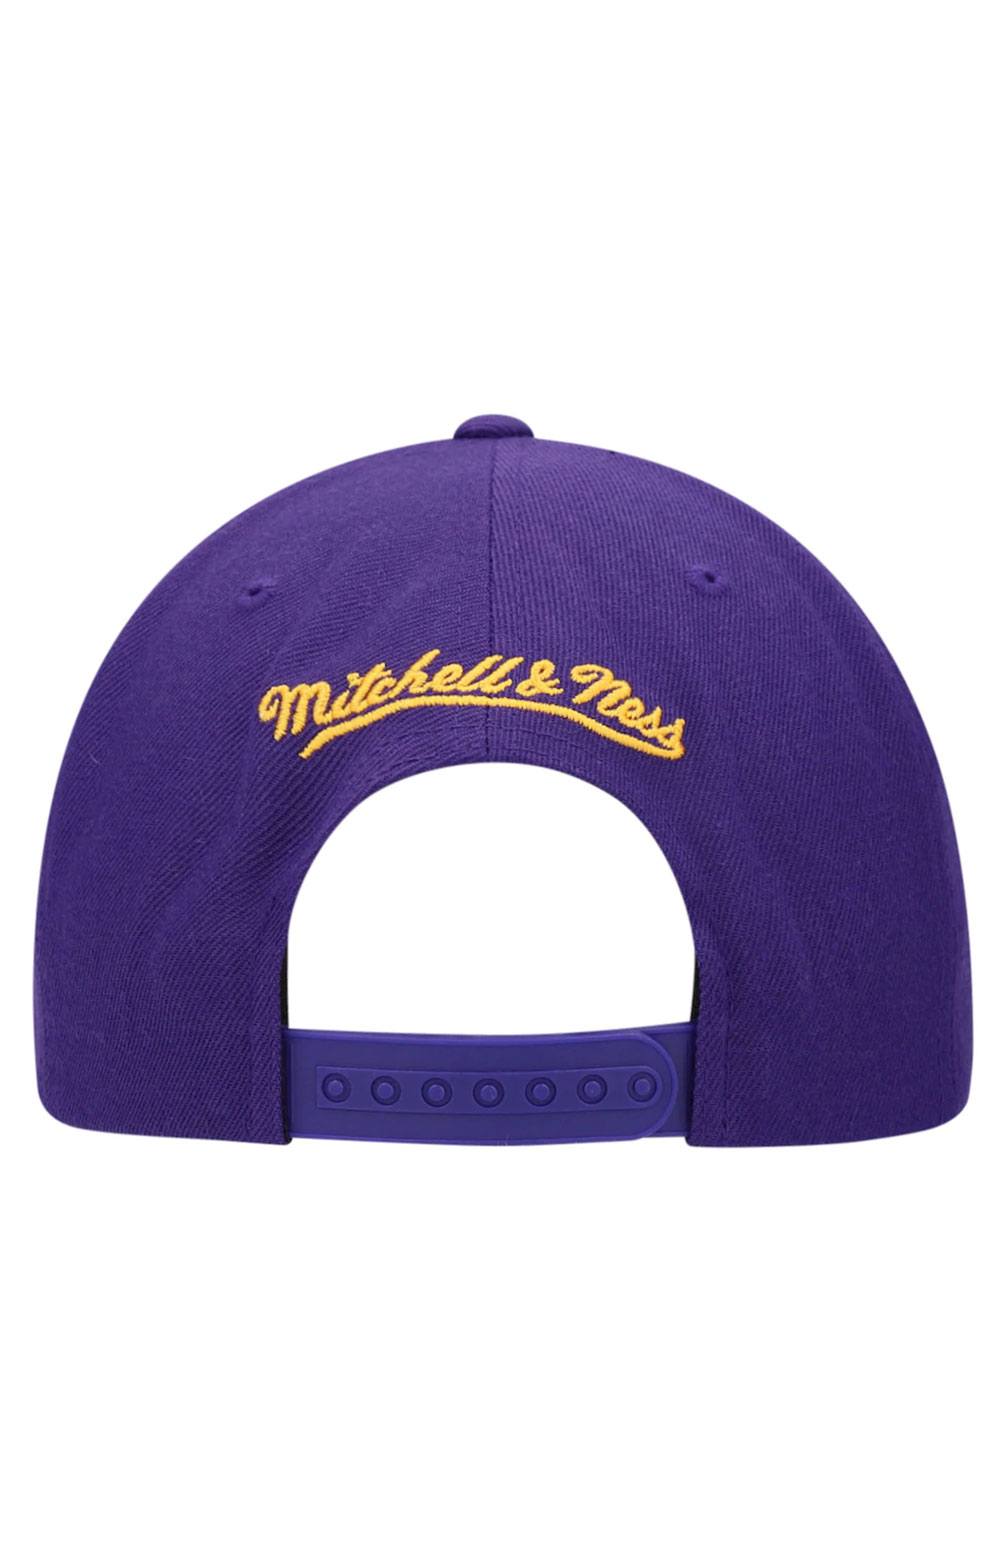 NBA Team Ground Snap-Back Hat - Lakers 4